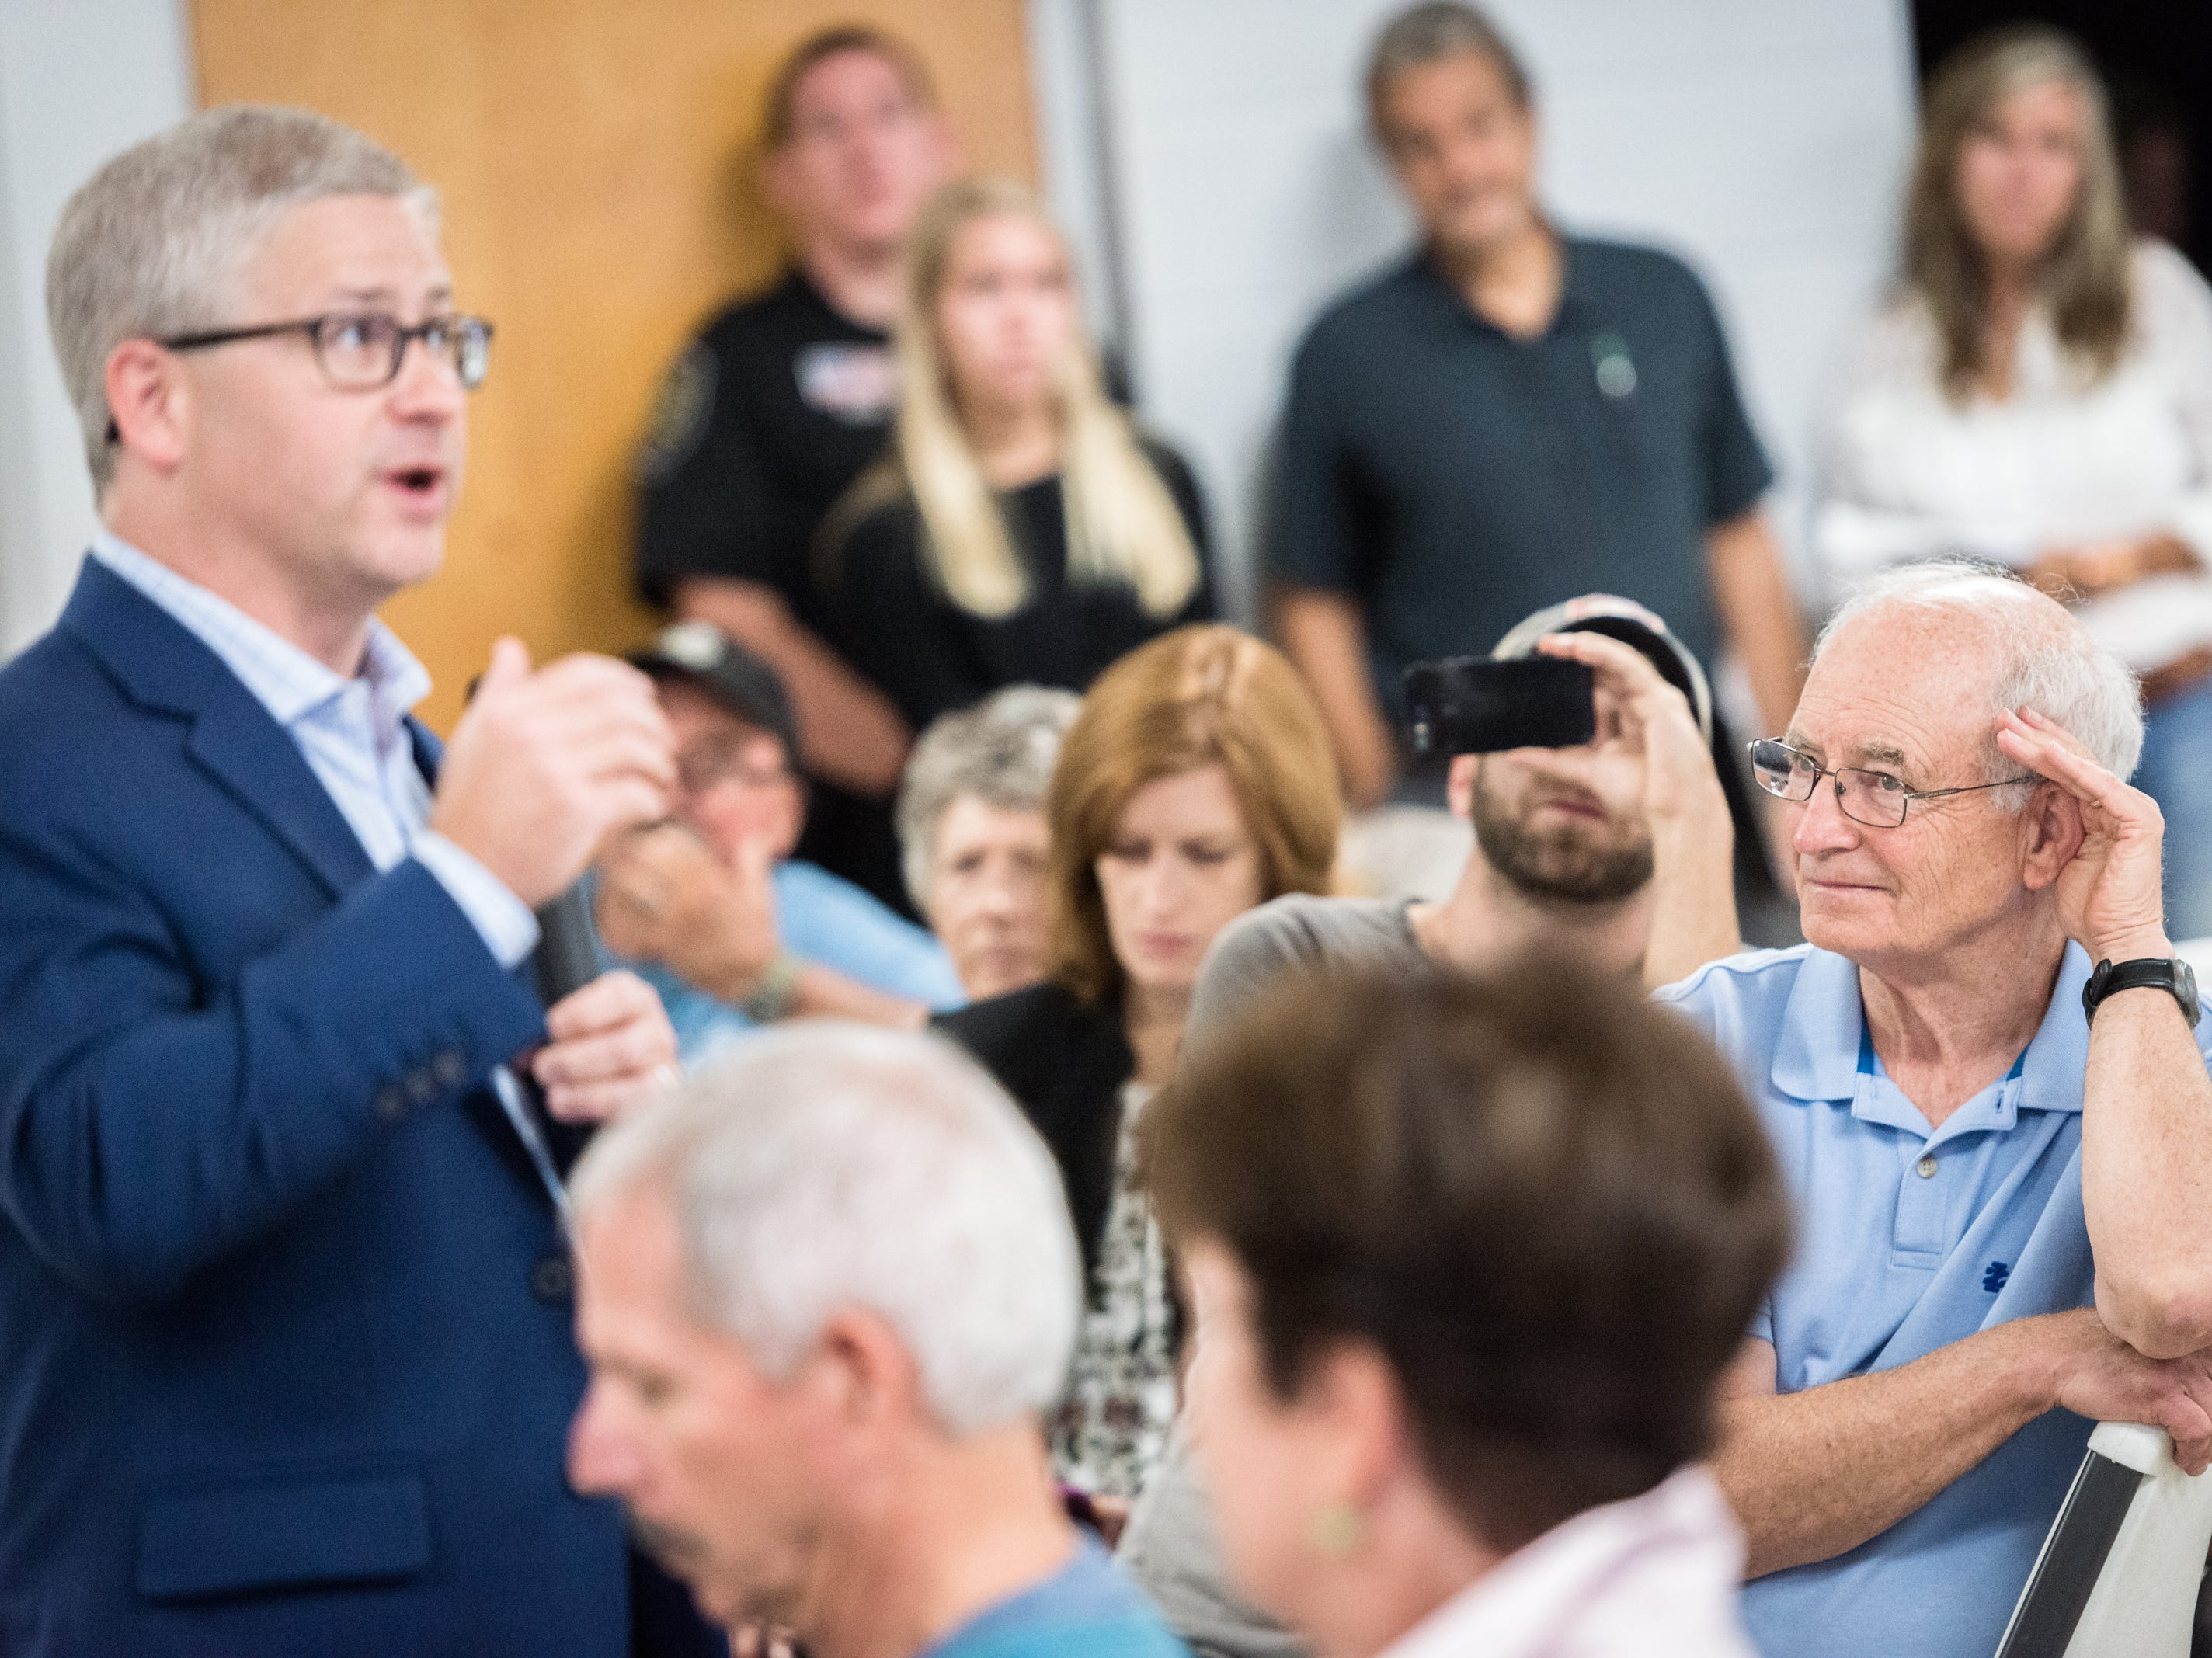 An attendee of the town hall meeting with Patrick McHenry, the U.S representative for North Carolina's 10th congressional district, listens to his response to a question taken at the Riceville Volunteer Fire Department Wednesday, August 1, 2018.